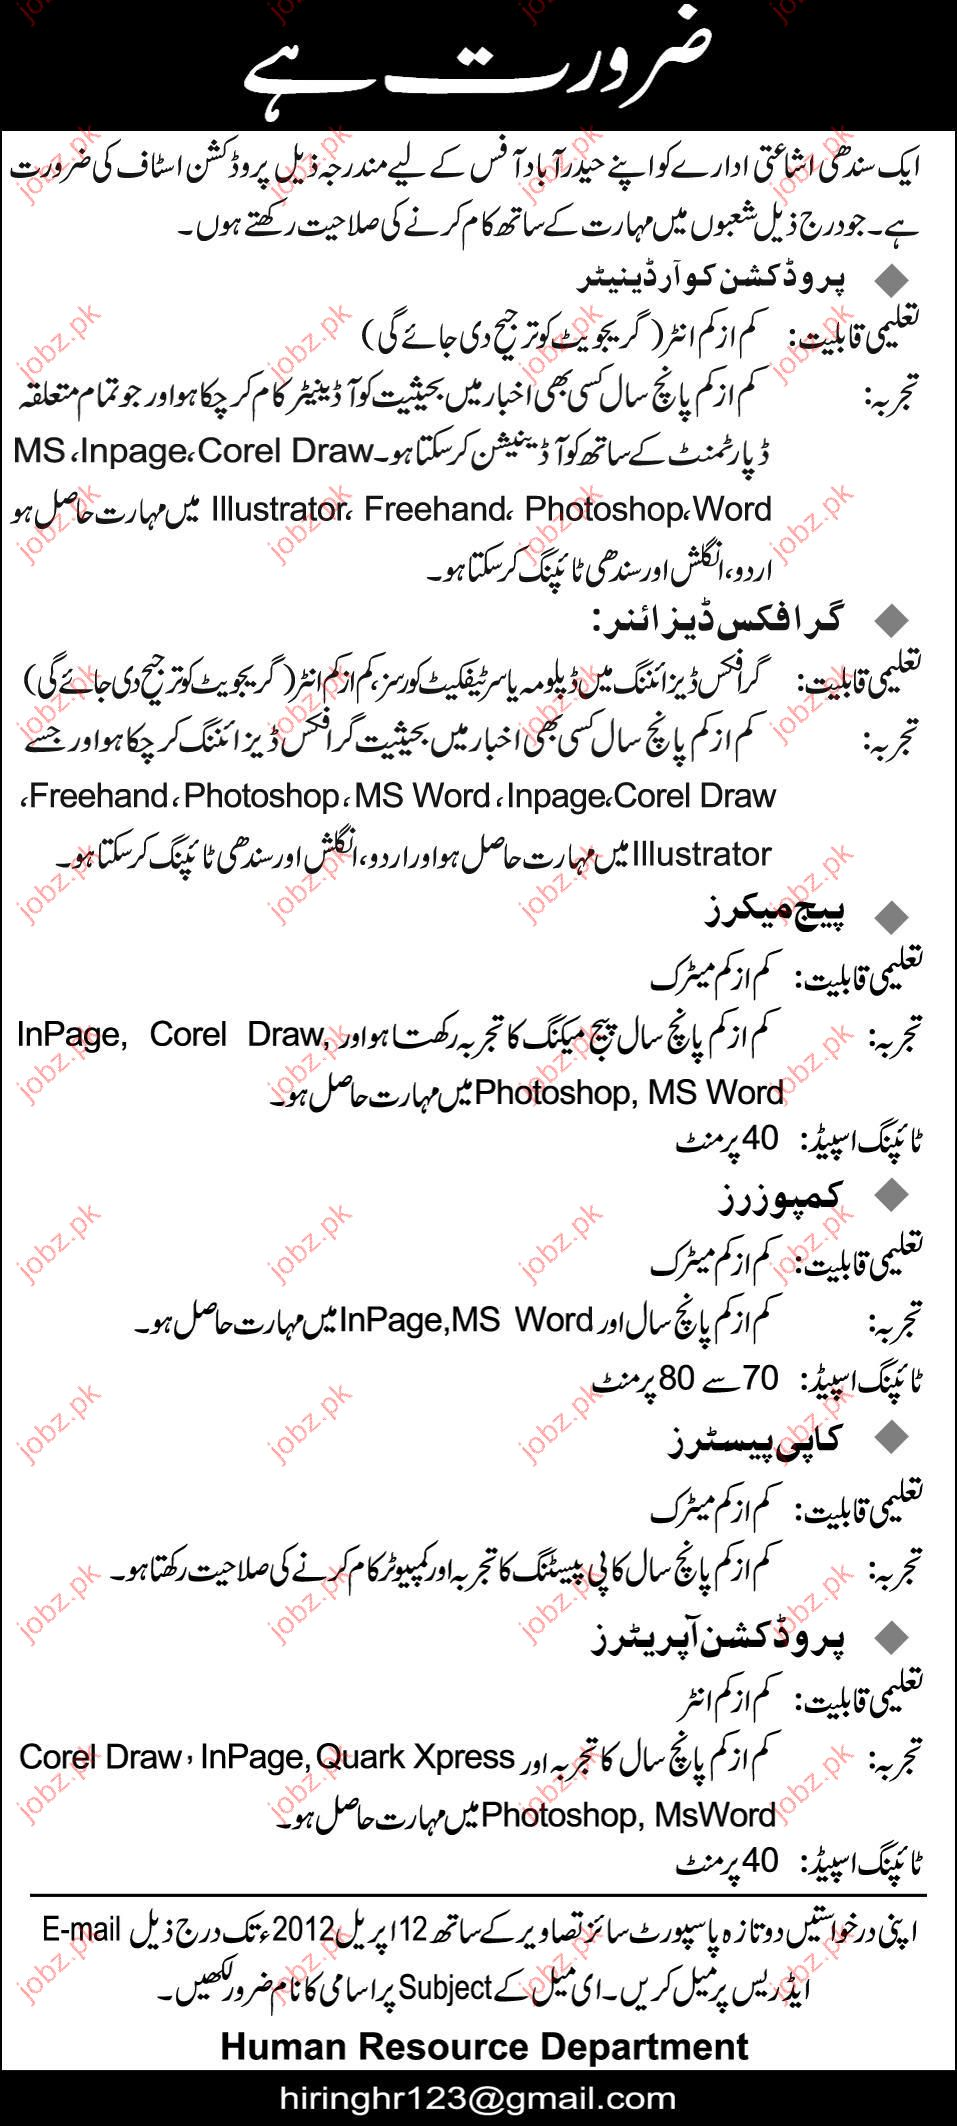 Production Coordinator Graphic Designer Page Maker jobs  : 350631 from www.jobz.pk size 957 x 2126 jpeg 305kB